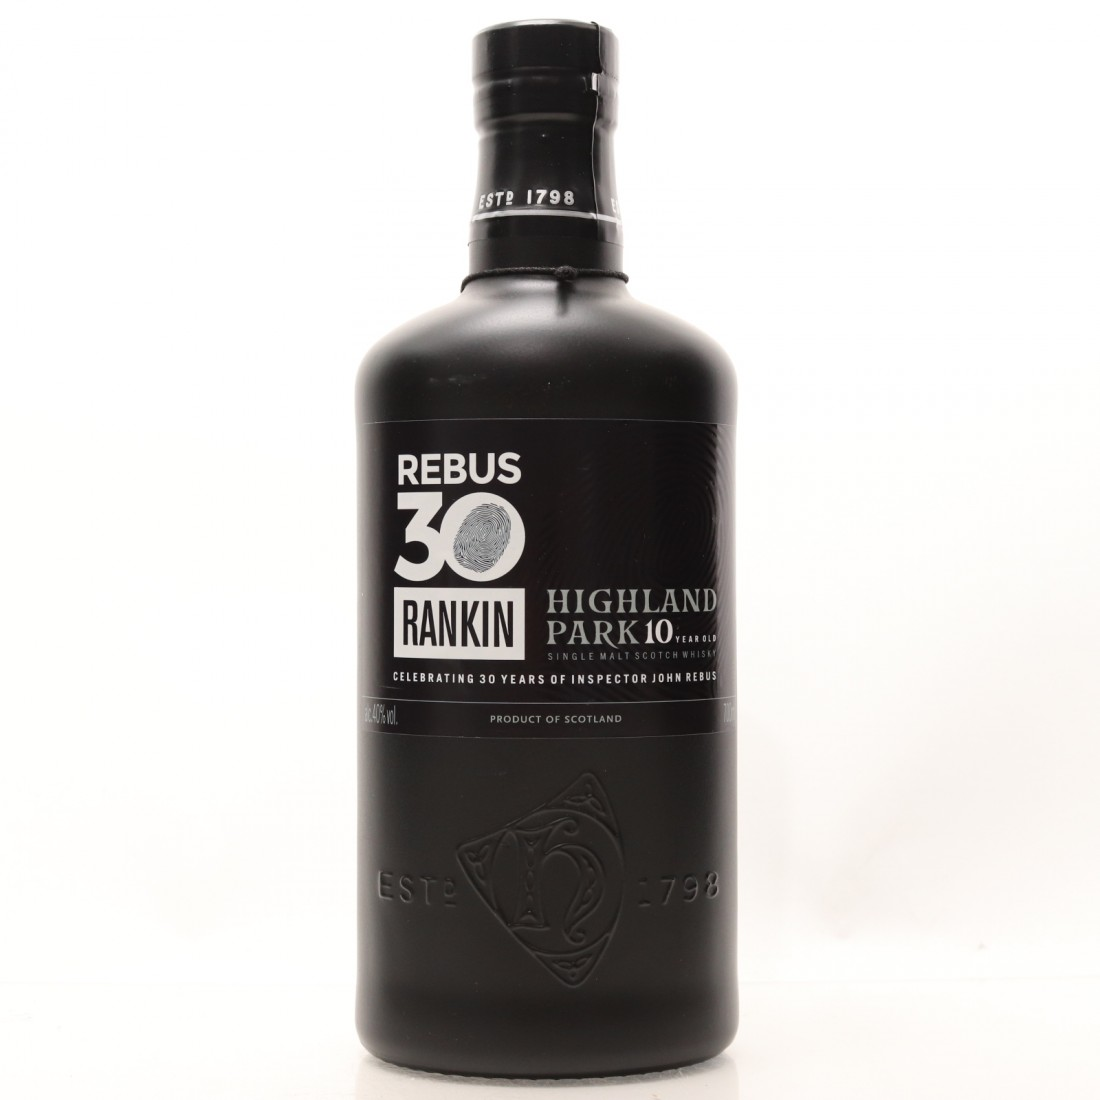 Highland Park 10 Year Old Rebus 30